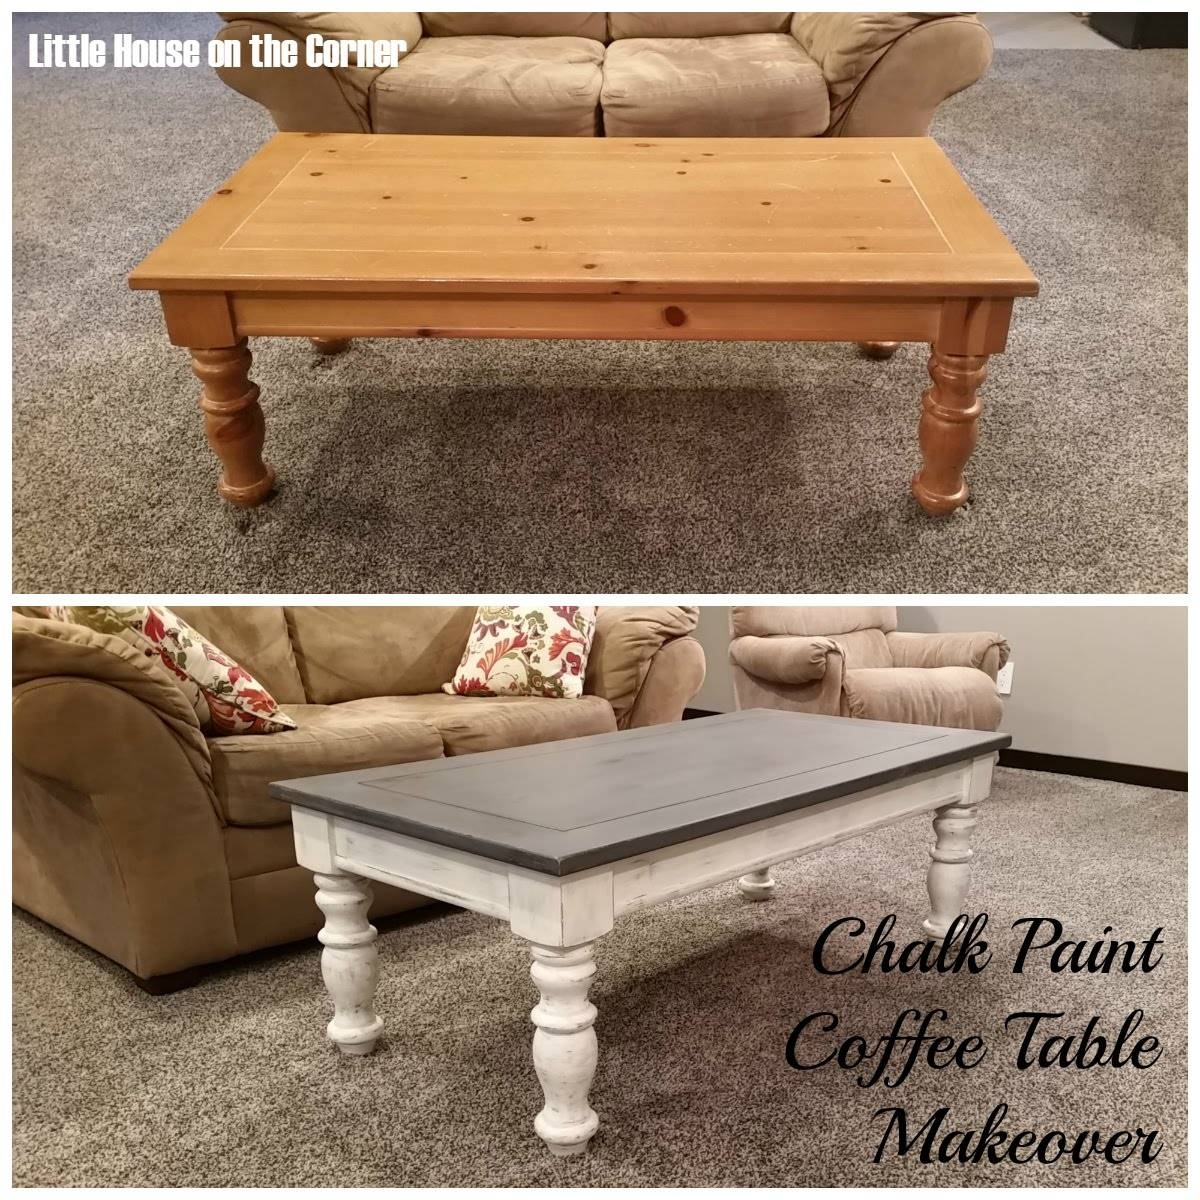 Little House On The Corner: Chalk Paint Coffee Table Makeover regarding Corner Coffee Tables (Image 22 of 30)